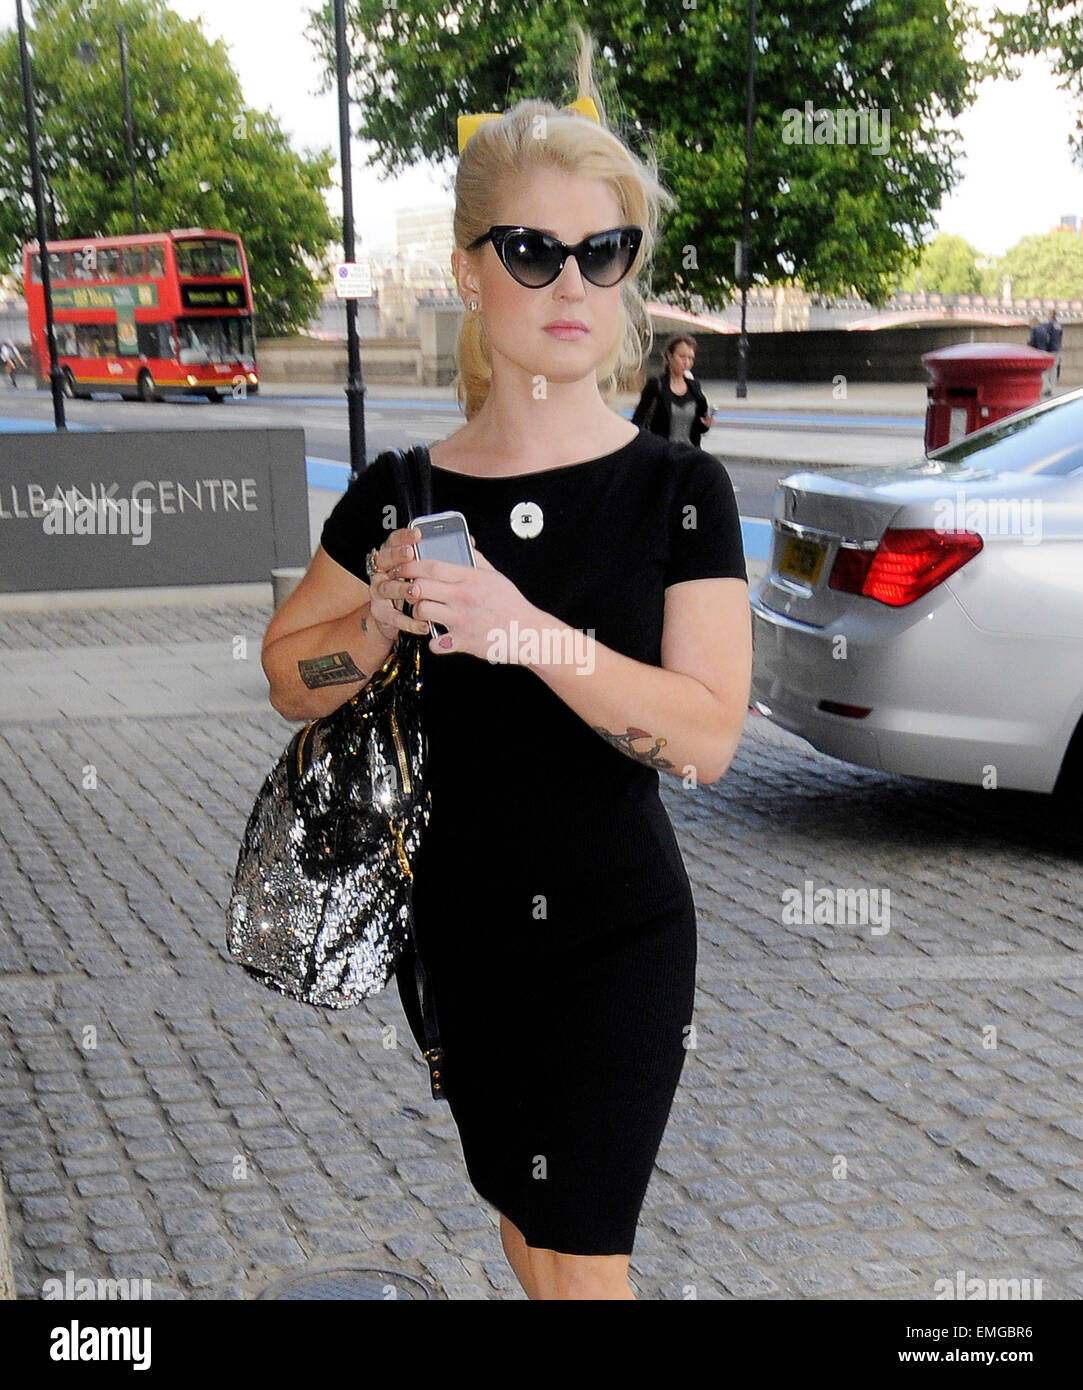 06.JULY.2011. LONDON  KELLY OSBOURNE ARRIVES AT THE MILLBANK TOWER IN CENTRAL LONDON FOR THE LAUNCH OF THE HUFFINGTON - Stock Image